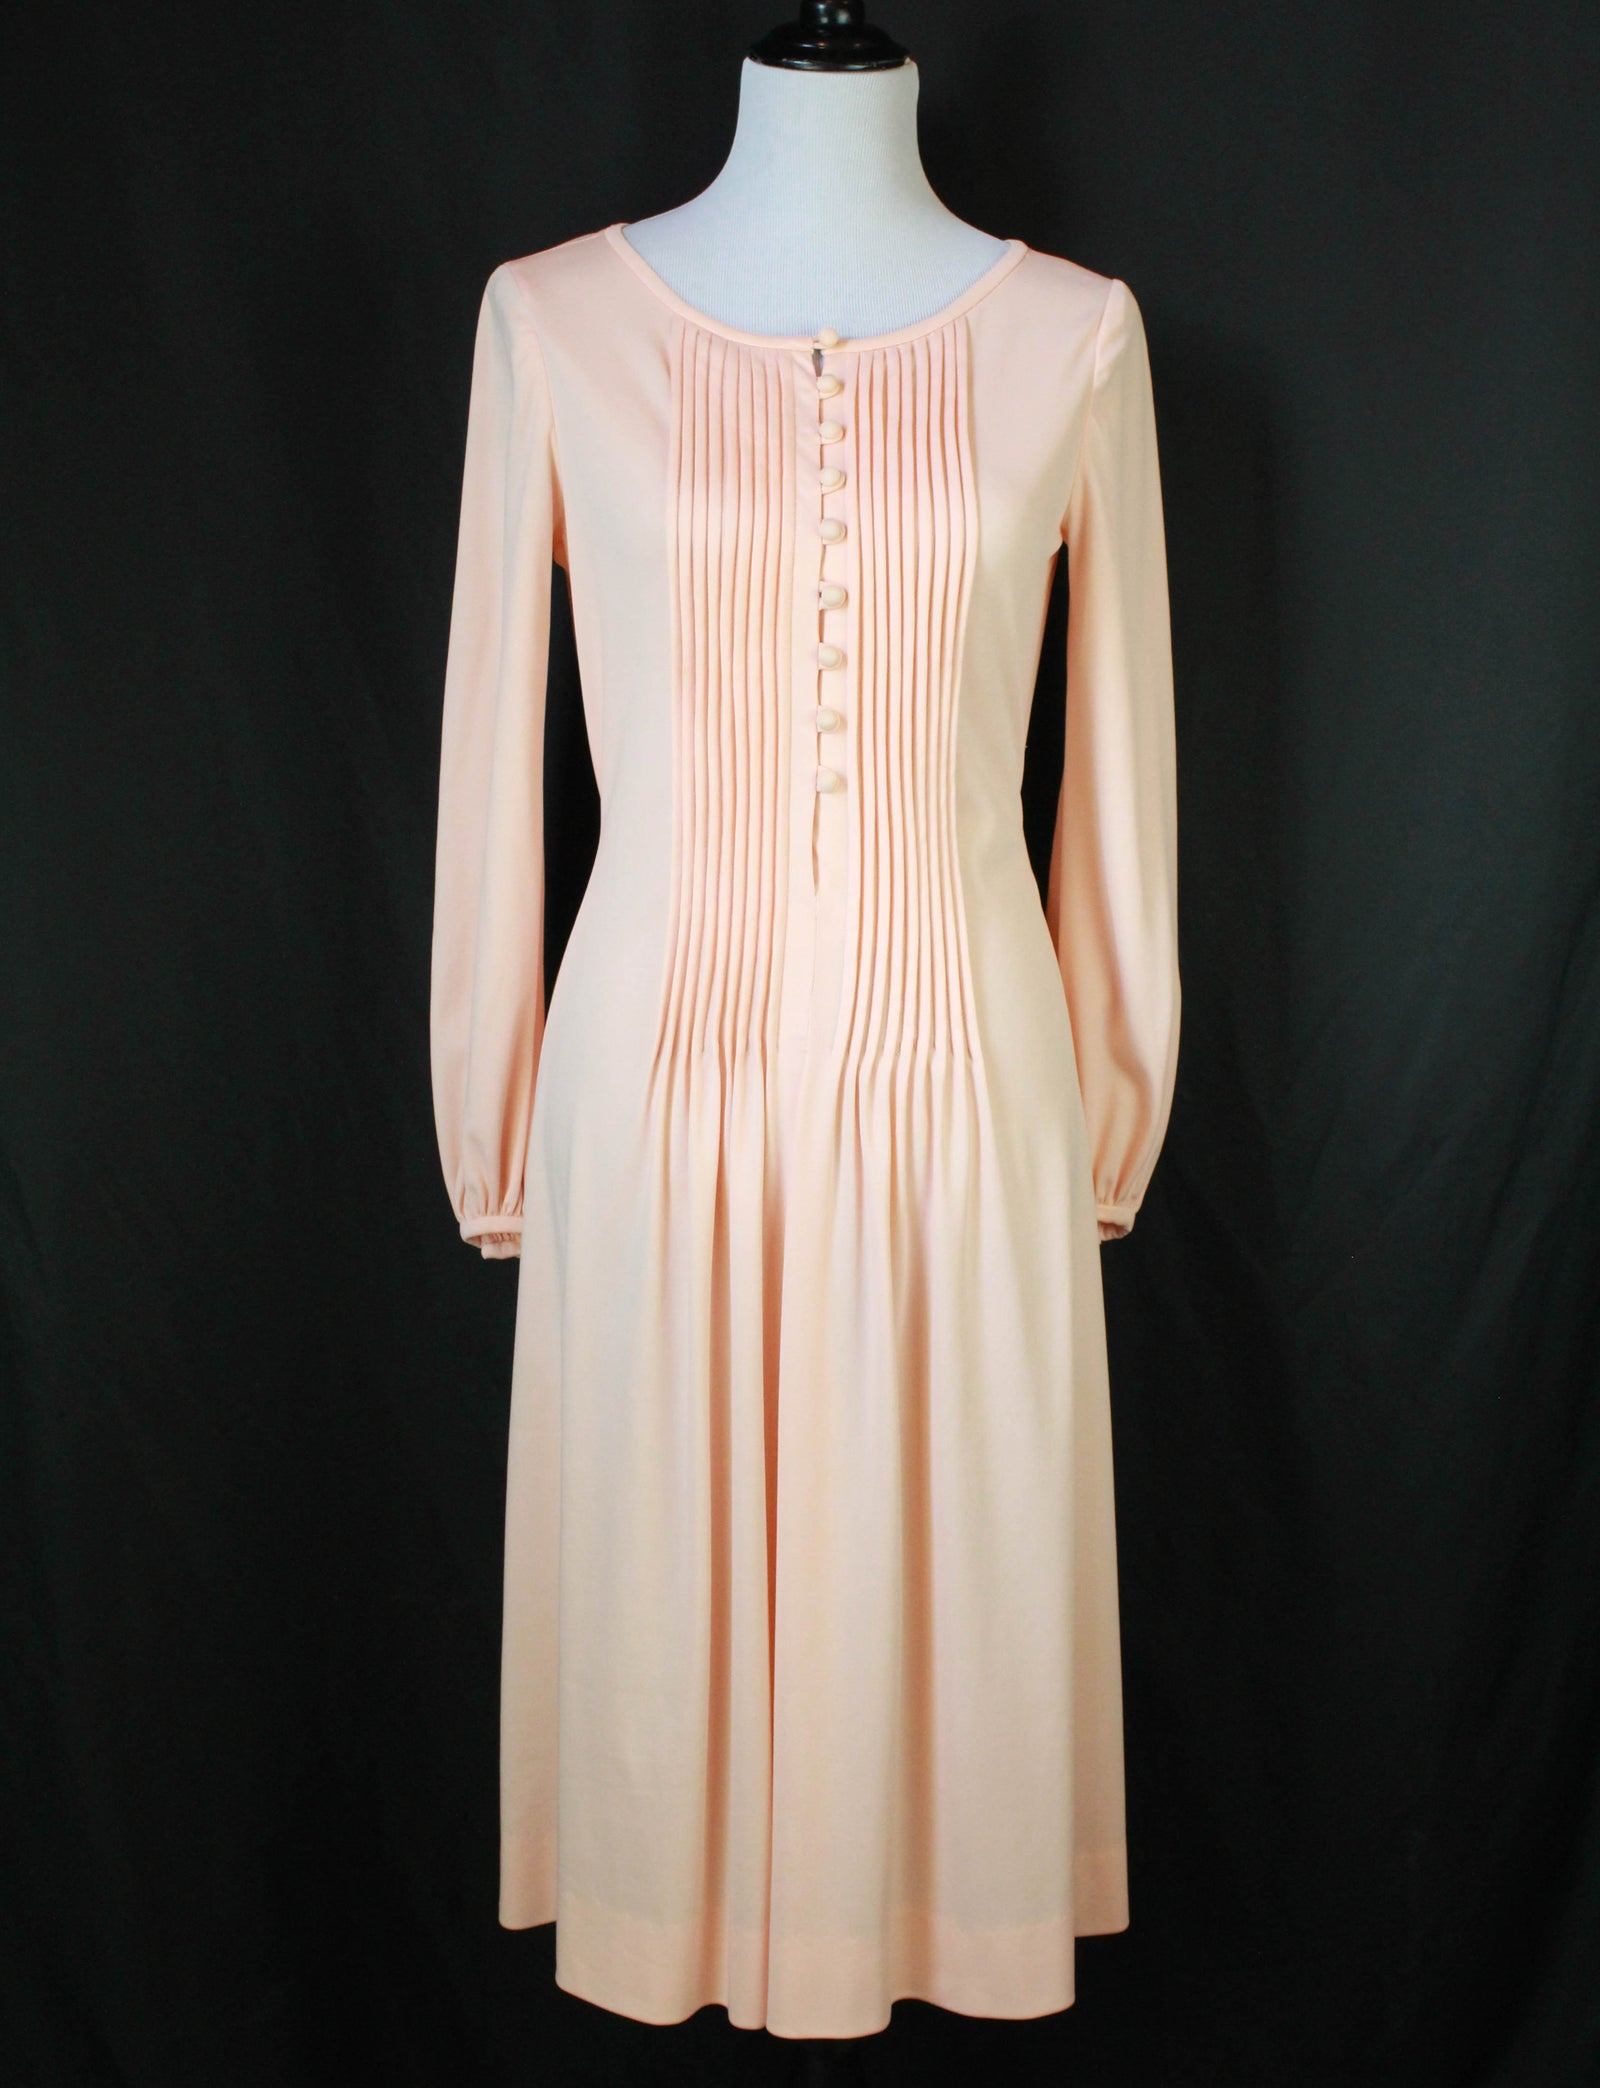 Women's Vintage 70's Pale Pink Tie Midi Dress - S/M